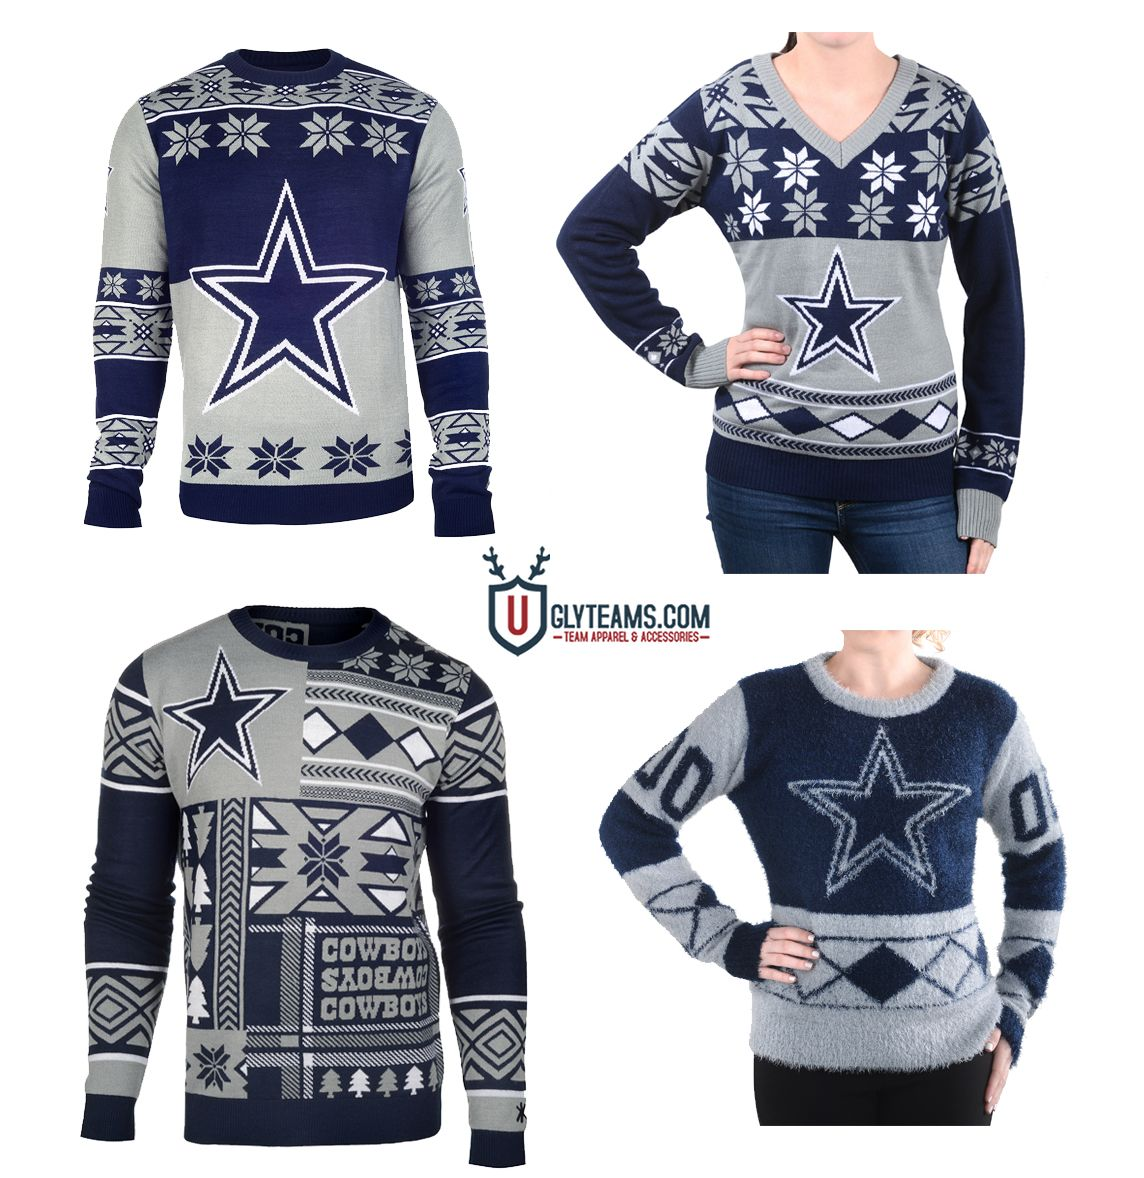 online retailer a4b83 a5482 Dallas Cowboys Ugly Sweaters by Uglyteams.com   For the love ...